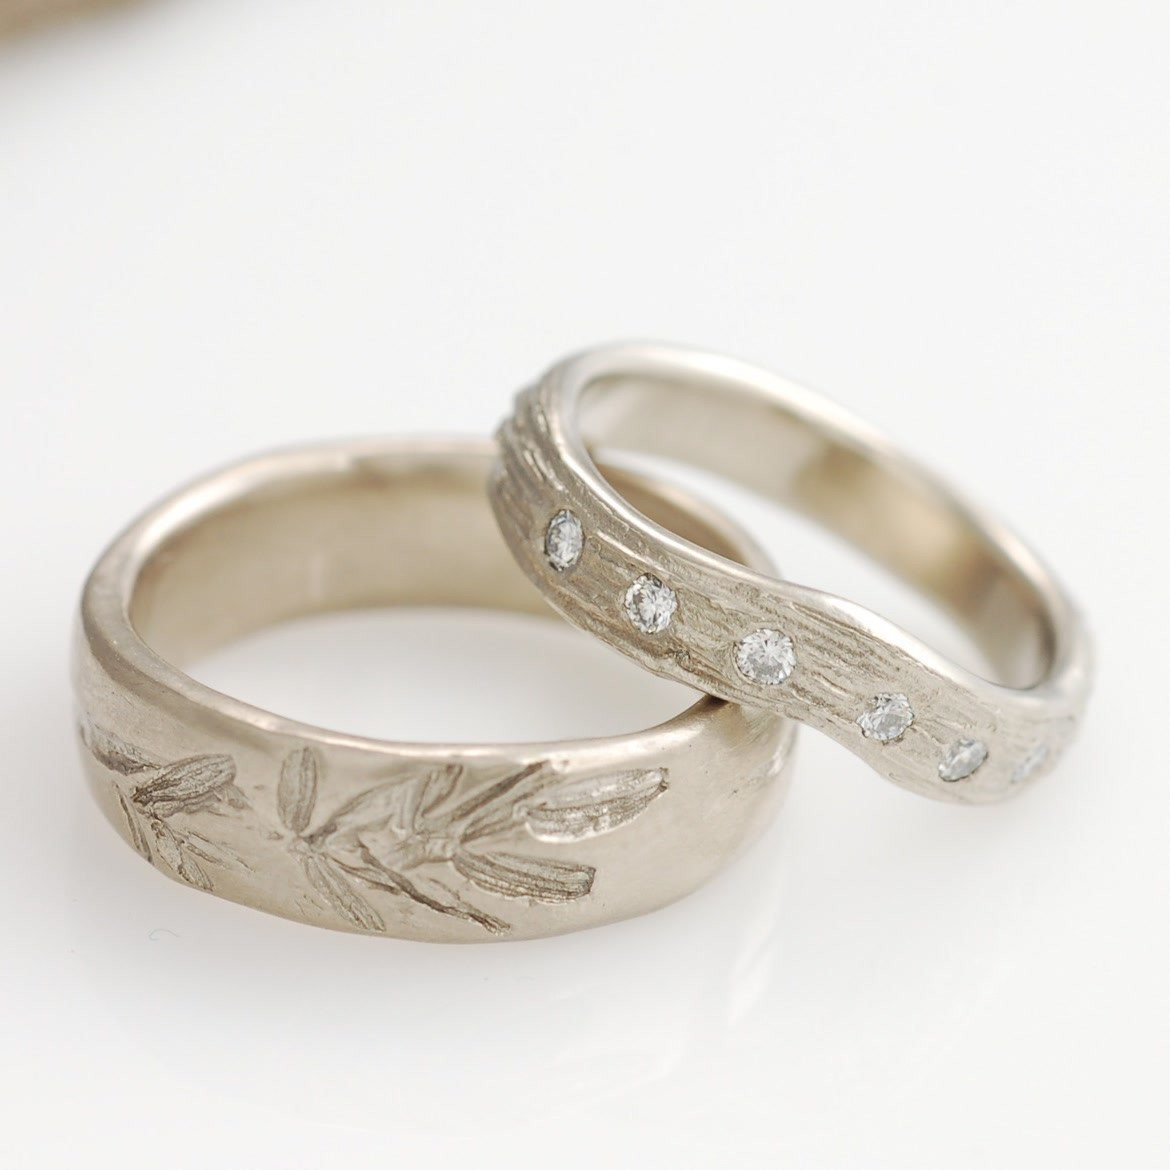 14k palladium white gold wedding bands - custom order plant motif and diamonds in tree bark by artisan jeweler Beth Cyr